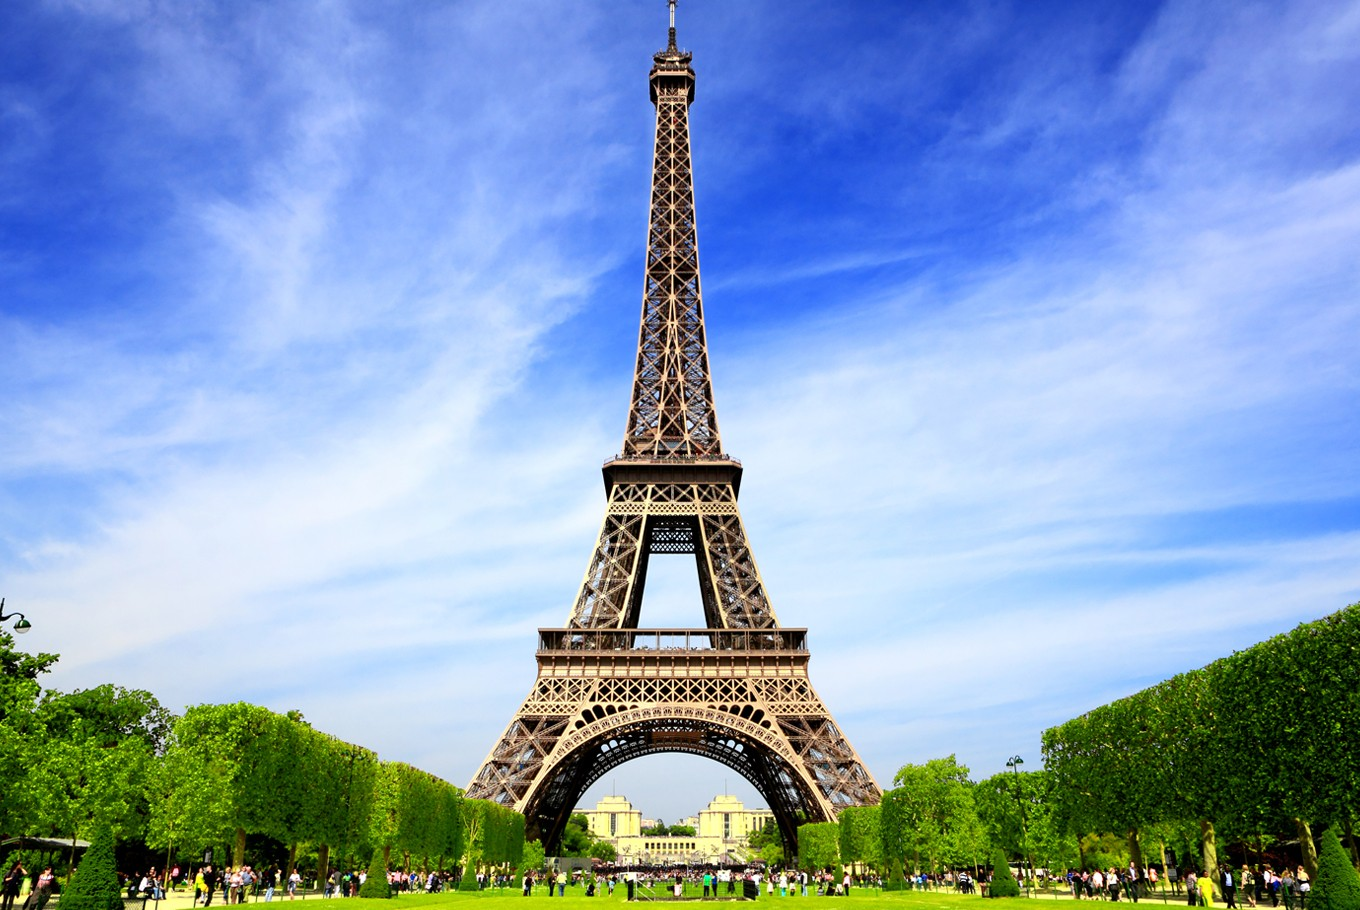 The Eiffel Tower is the world's most popular tourist attraction according to Instagram